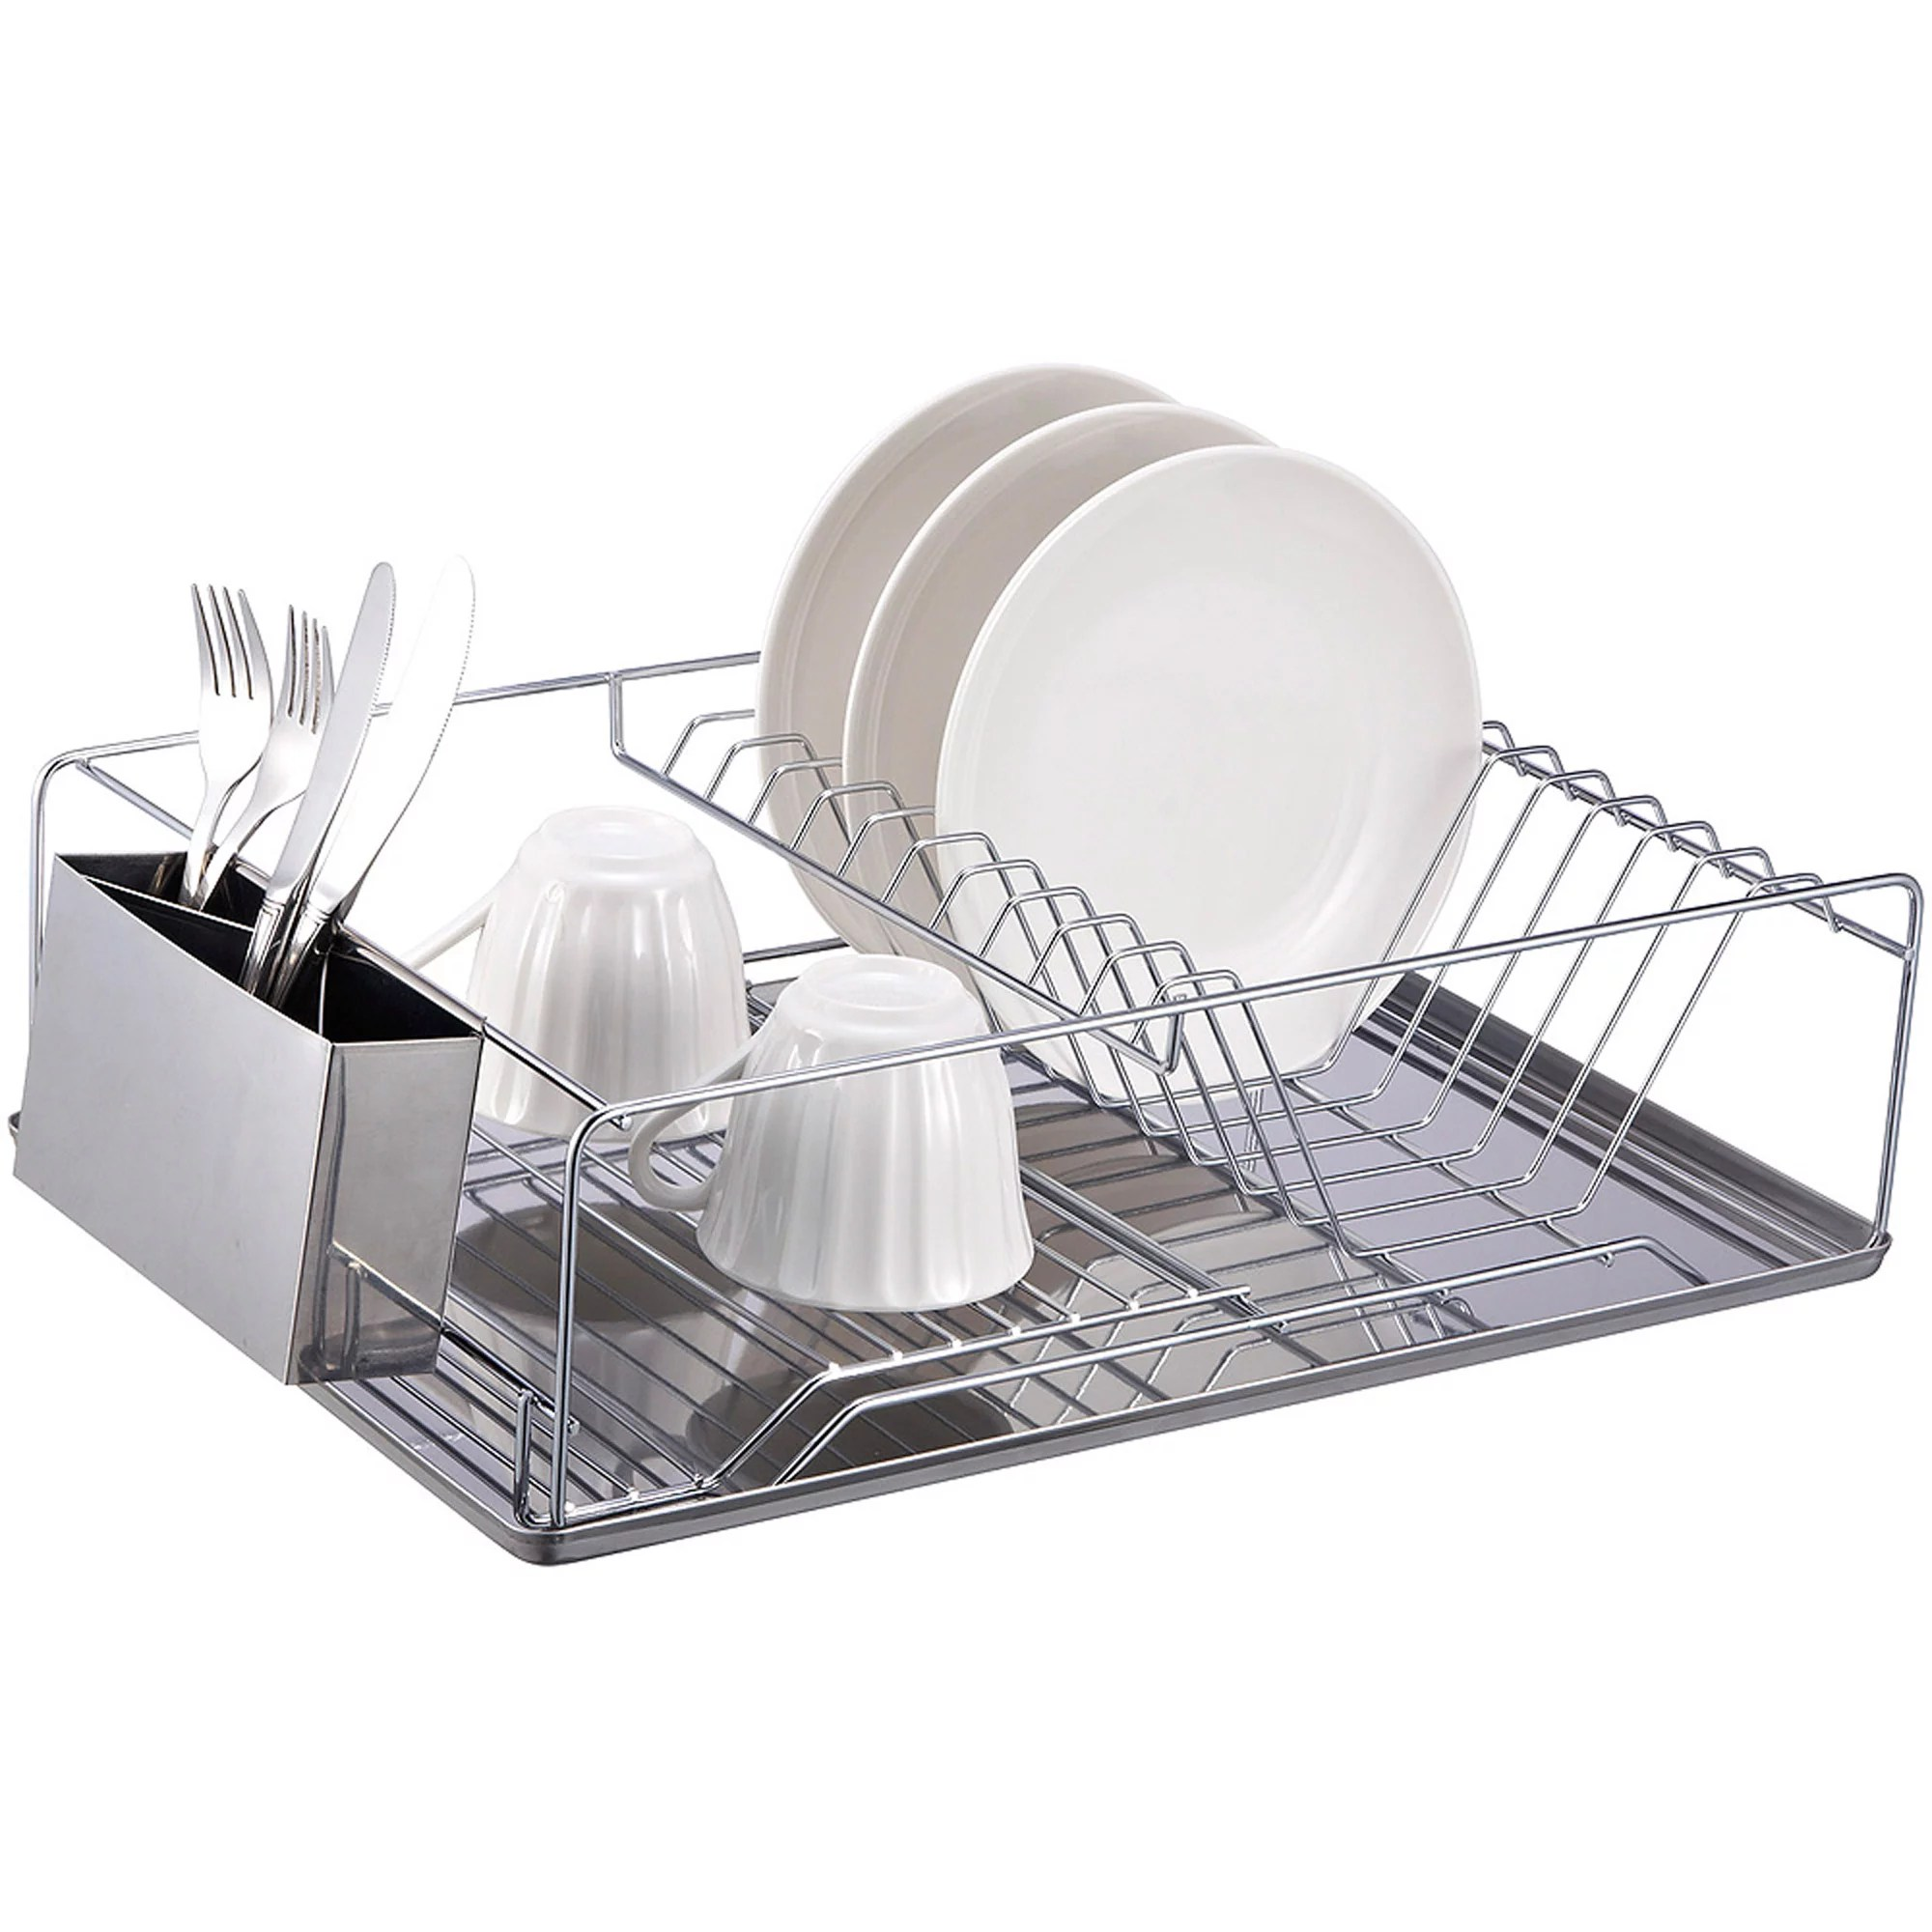 home basics chrome plated steel dish rack with stainless steel tray walmart com